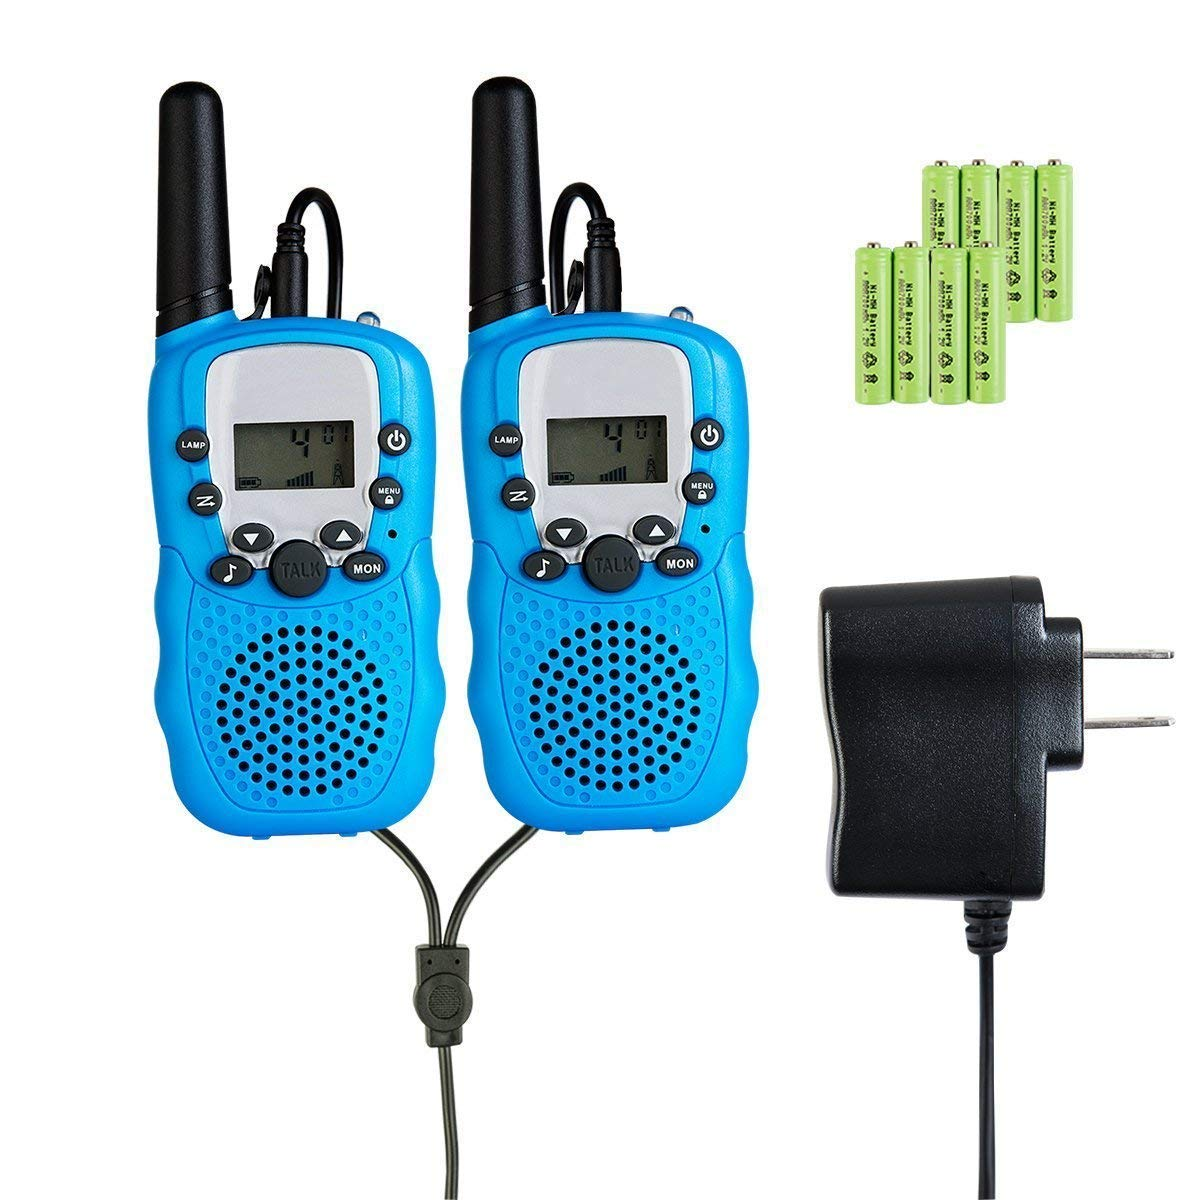 Rechargeable Walkie Talkie, Easy to use Two Way Radios, Best Gift 22 Chanels Long Range Cool Vox Walky Talky for Camping Hiking Fishing Toys with Batteries and Charger (Blue) by GZL (Image #1)